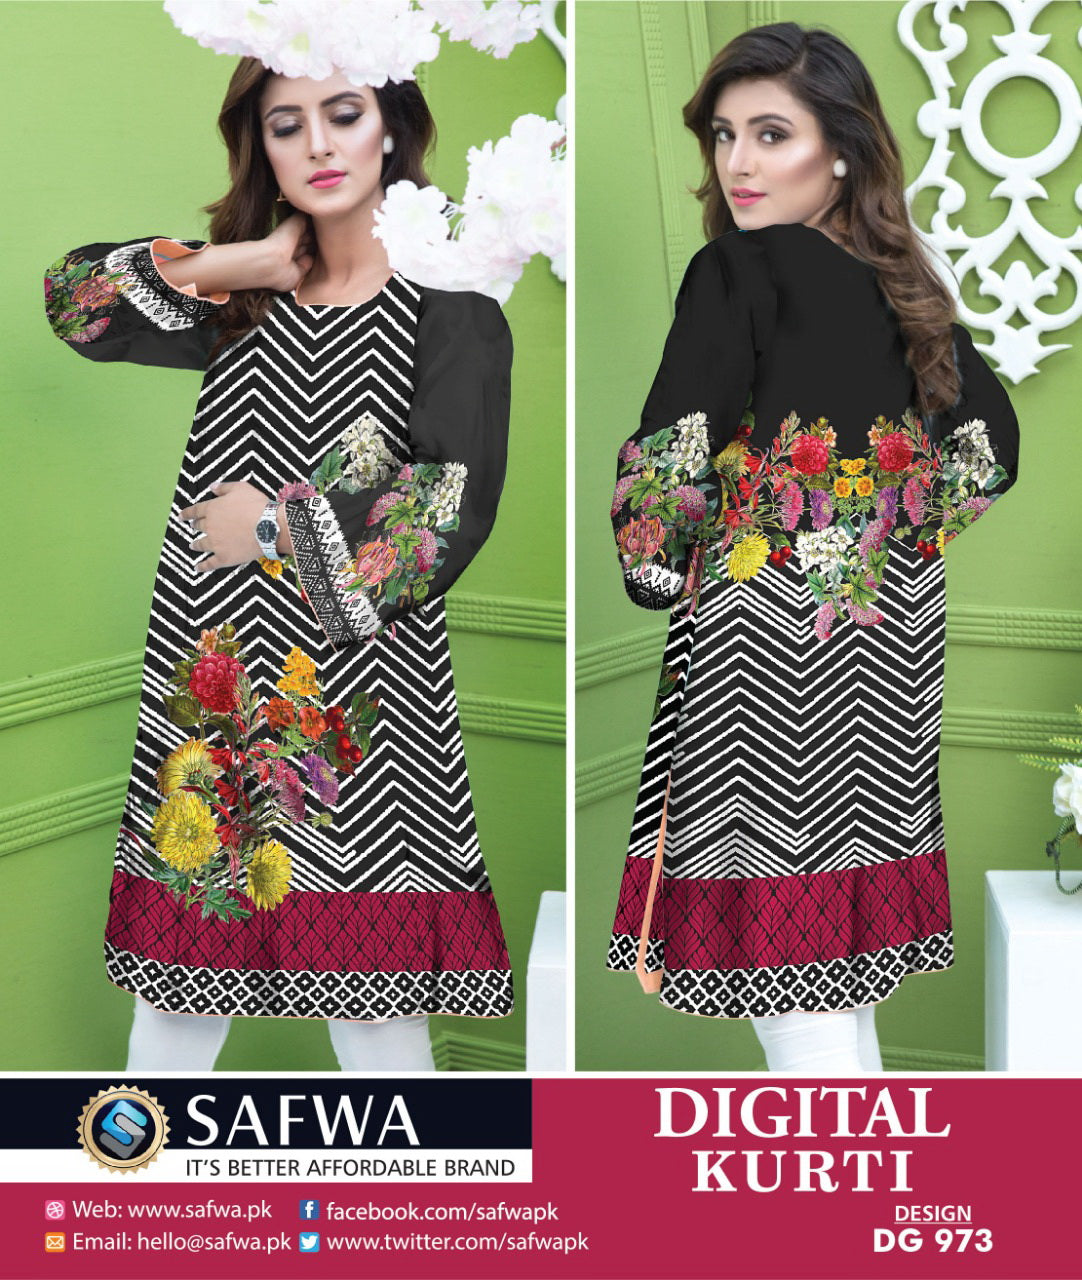 SAFWA DRESS DESIGN, DRESSES, PAKISTANI DRESSES, DG973 - SAFWA DIGITAL COTTON PRINT KURTI COLLECTION -SHIRT KURTI KAMEEZ-Shirt-Kurti-SAFWA -SAFWA Brand Pakistan online shopping for Designer Dresses